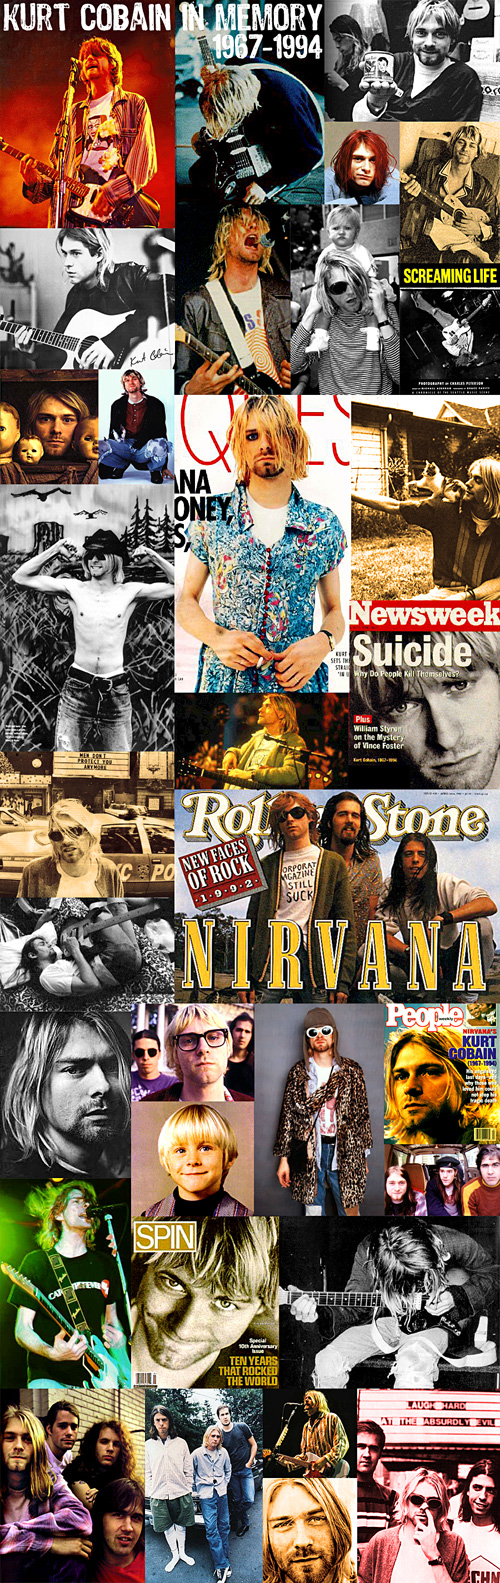 thum-tribute-to-kurt-cobain